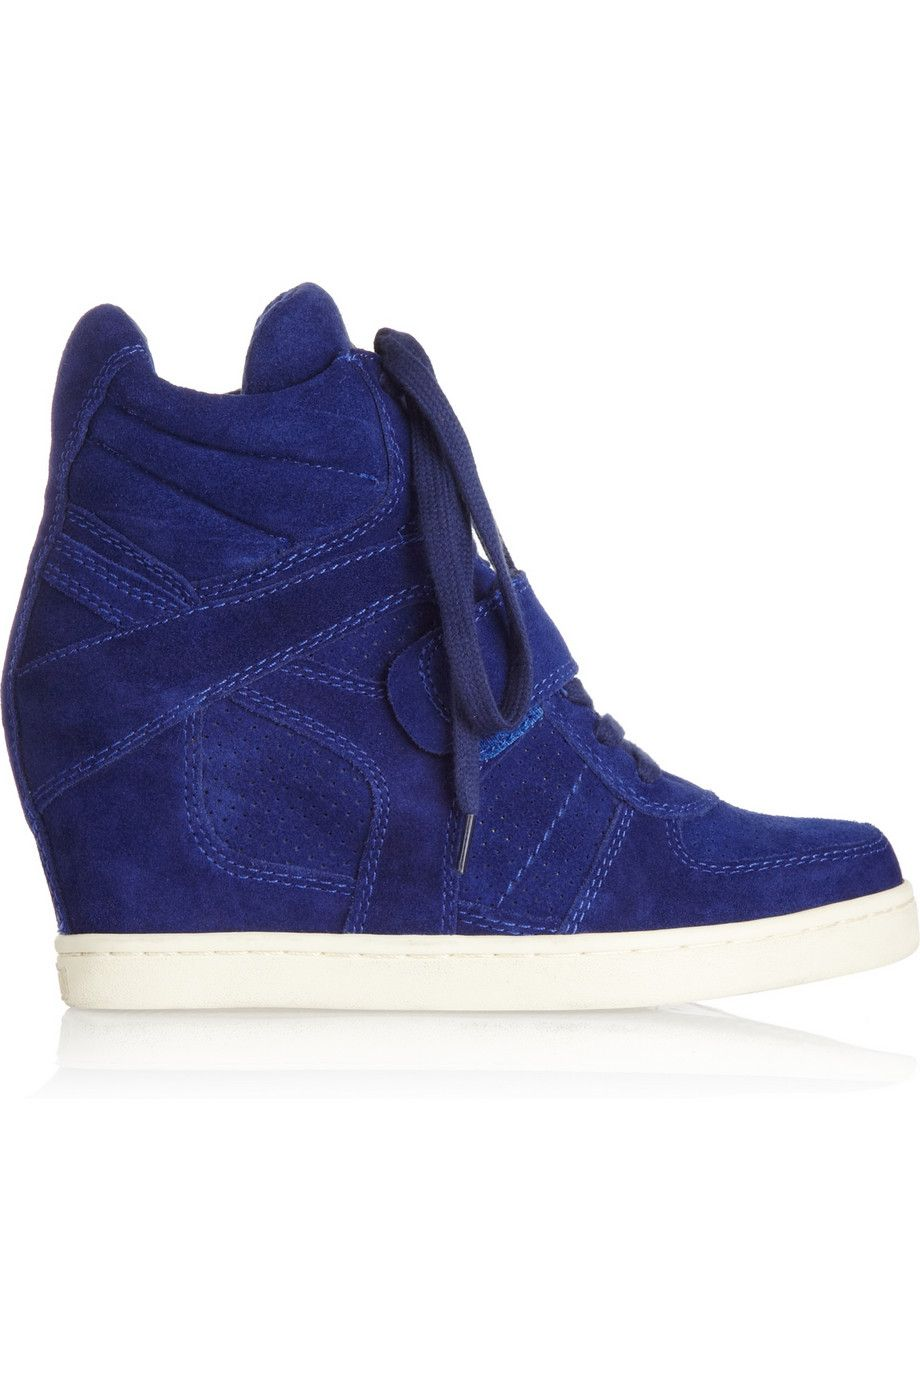 7e67e91f99f59 Cool suede wedge high-top sneakers by ASH